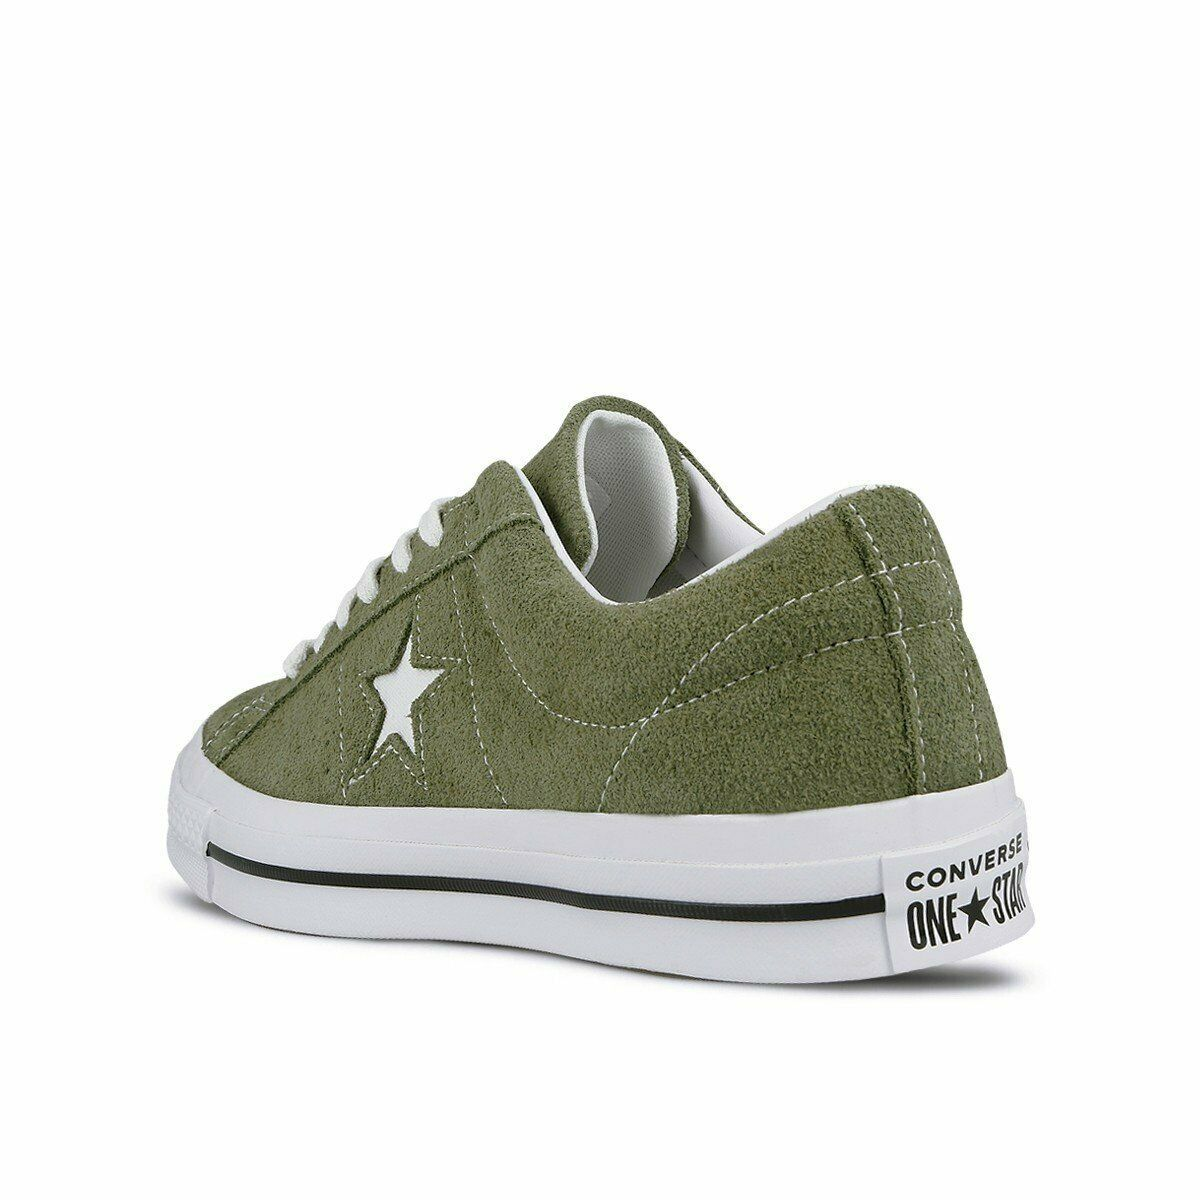 Converse Mens One Star Ox Suede 161576C Field Surplus (Olive) / White Size 9 image 4